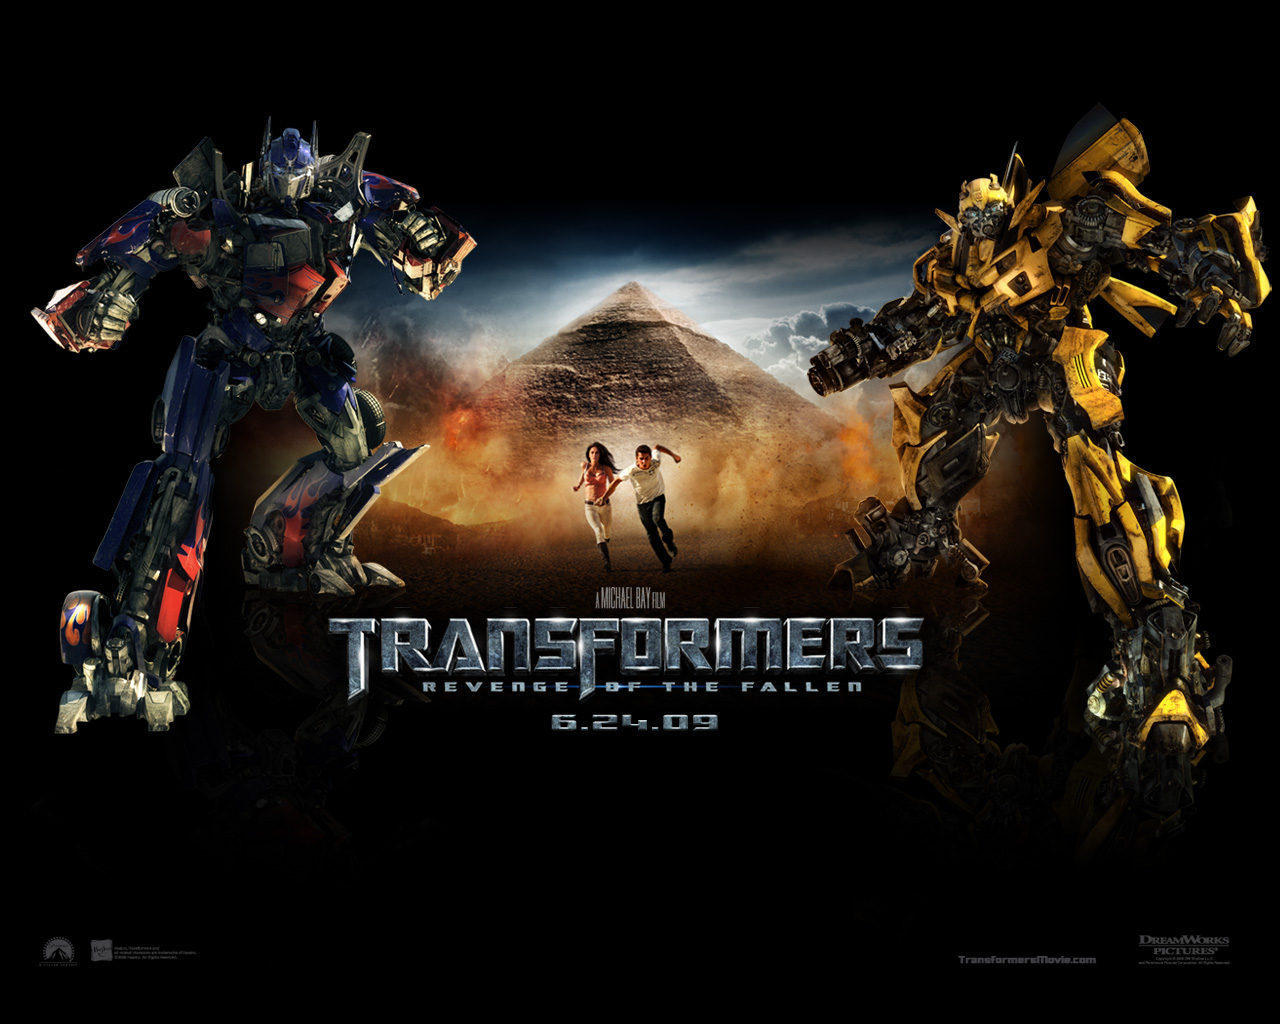 Transformers Revenge Of The Fallen - Transformers 2 Wallpaper  picture wallpaper image